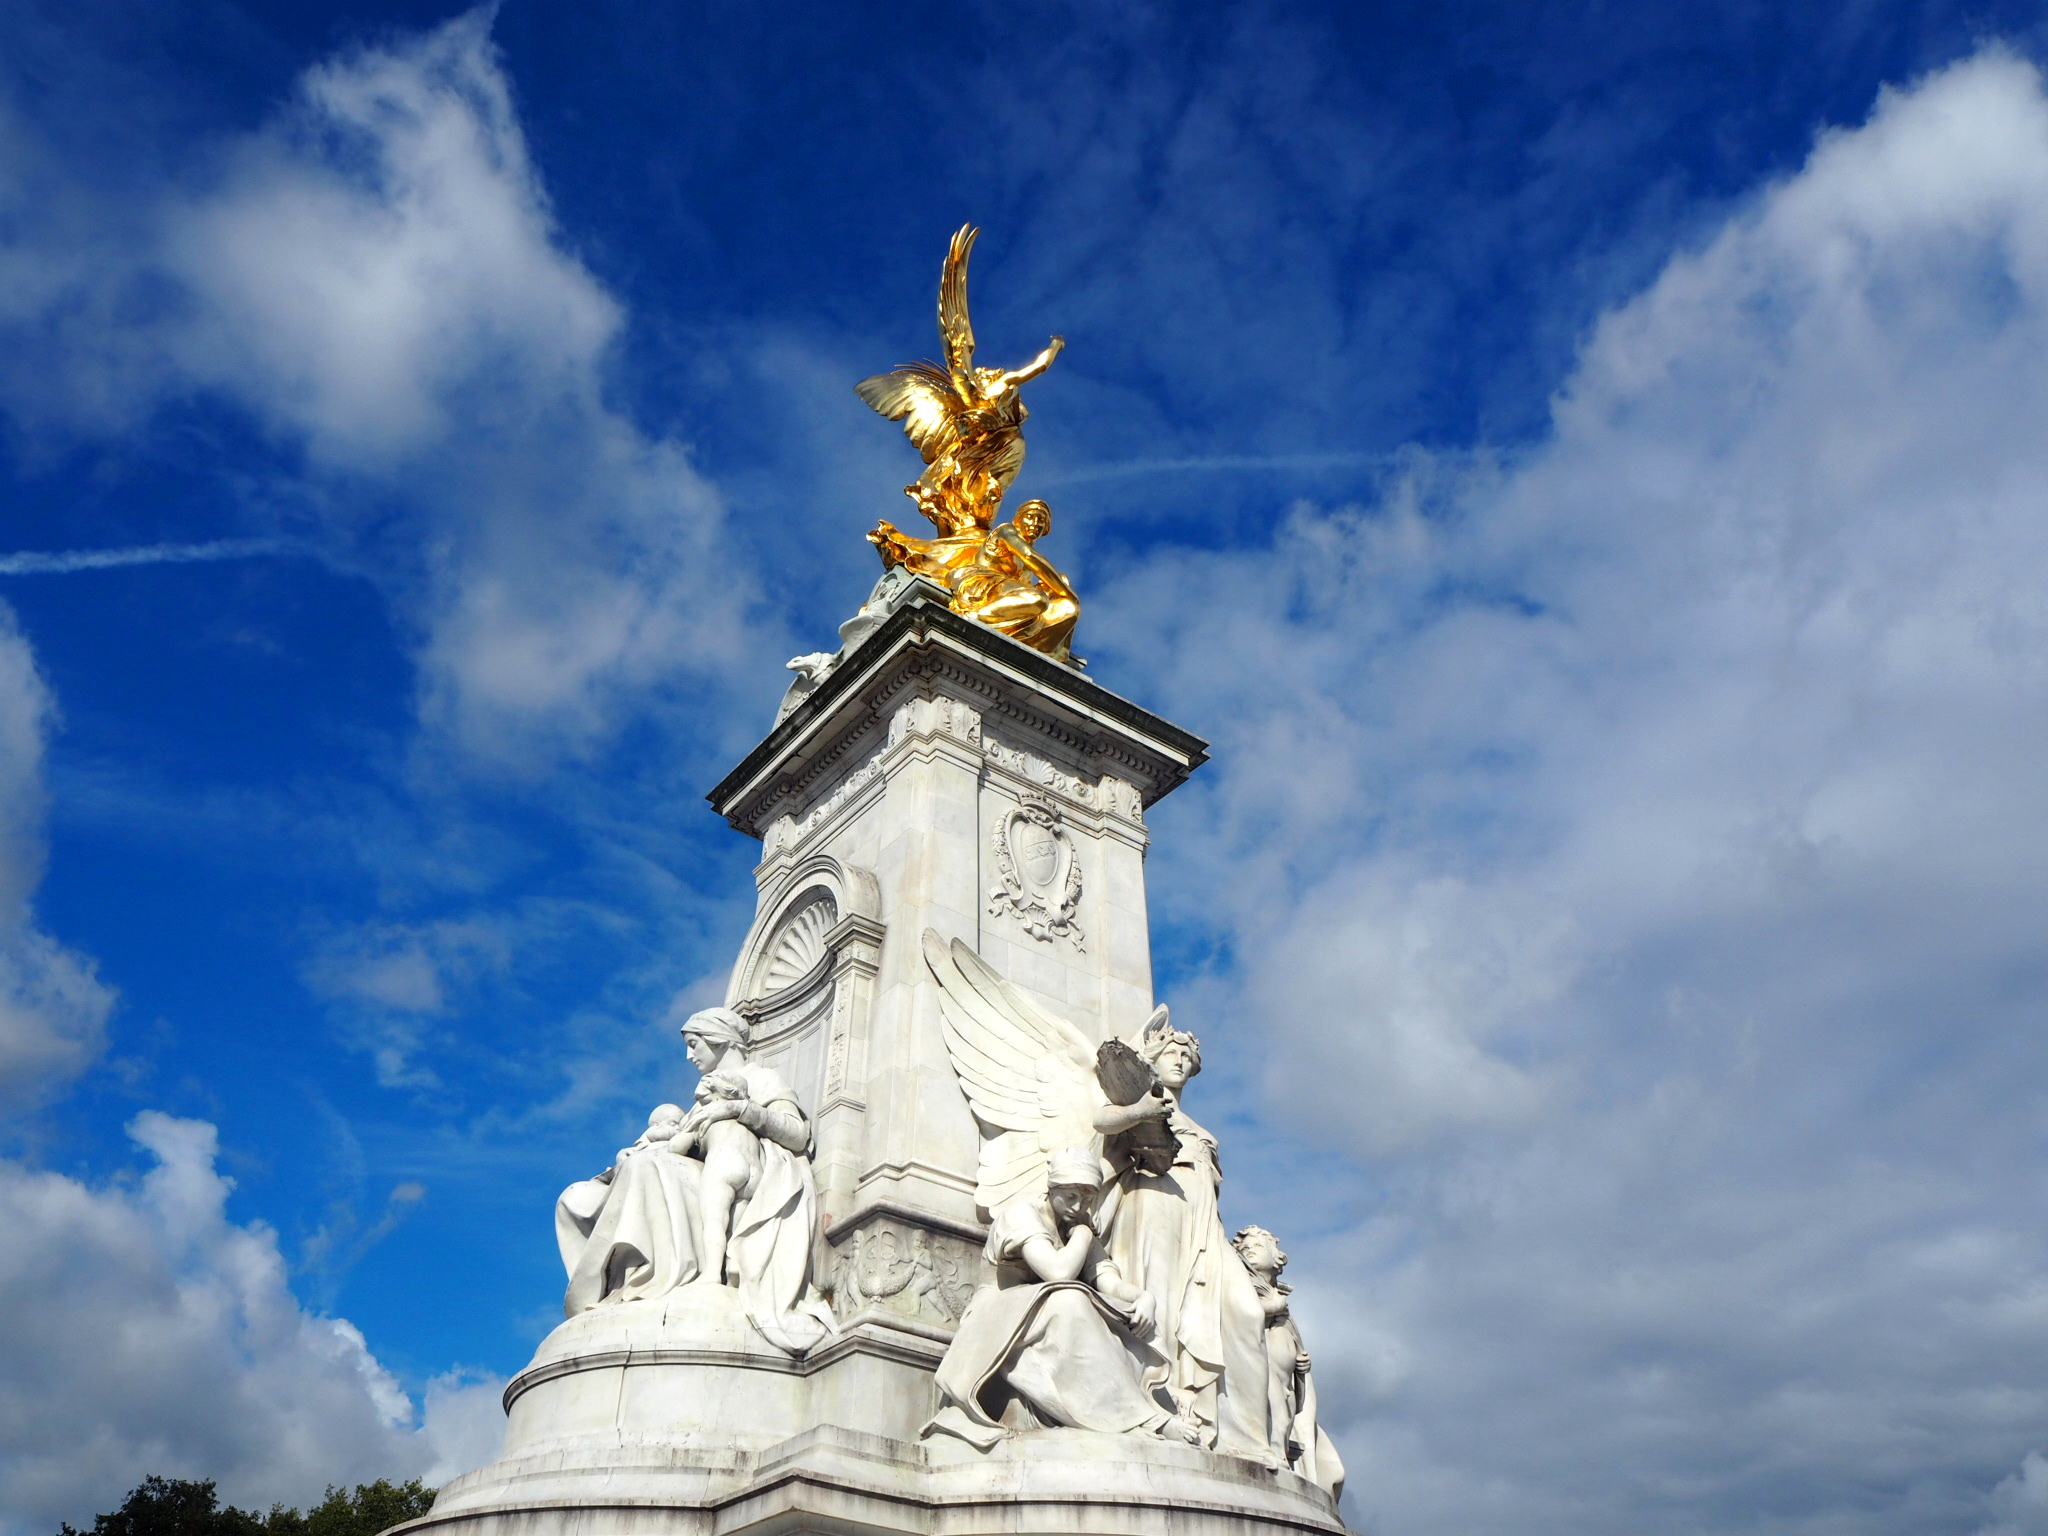 Buckingham-Palace-London-Statue